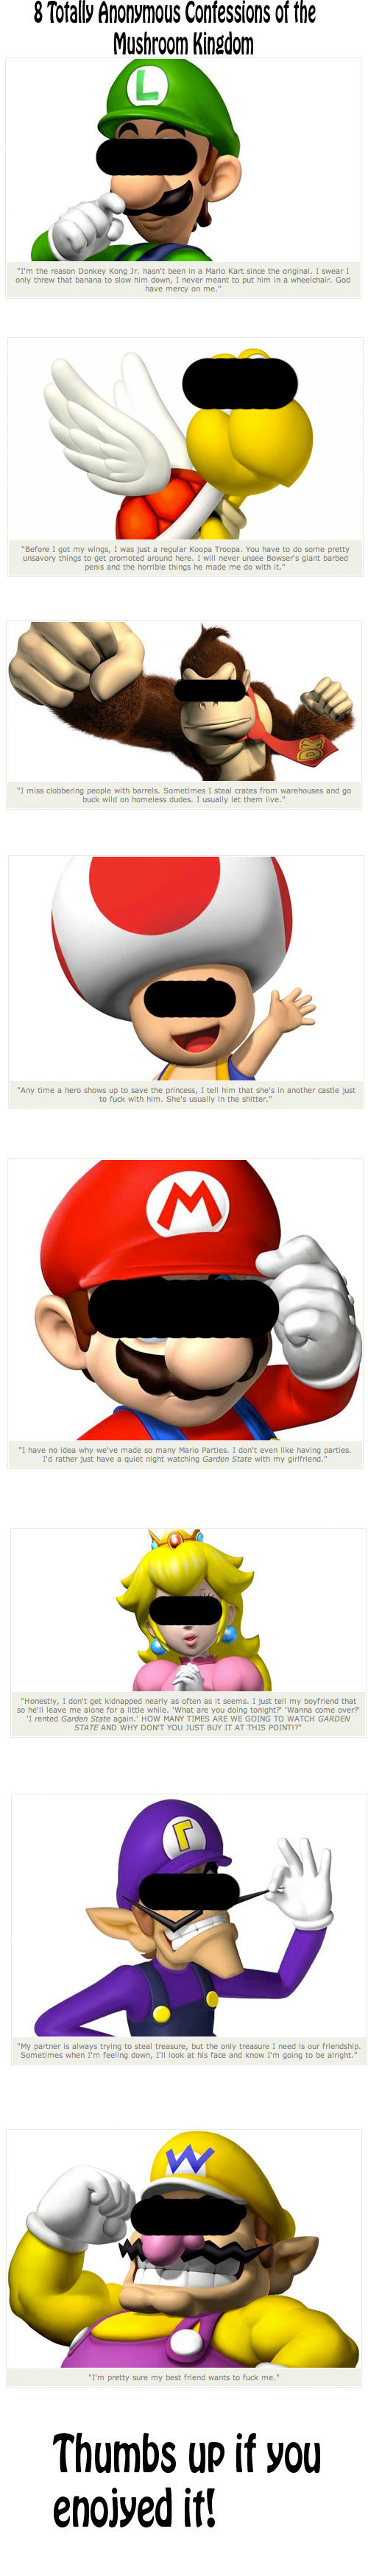 Mario Confessions. Found it on CollegeHumor.<br /> I think it was posted before, so sorry everyone. Wally anonymous Confessions d the Mushroom madam 1' m